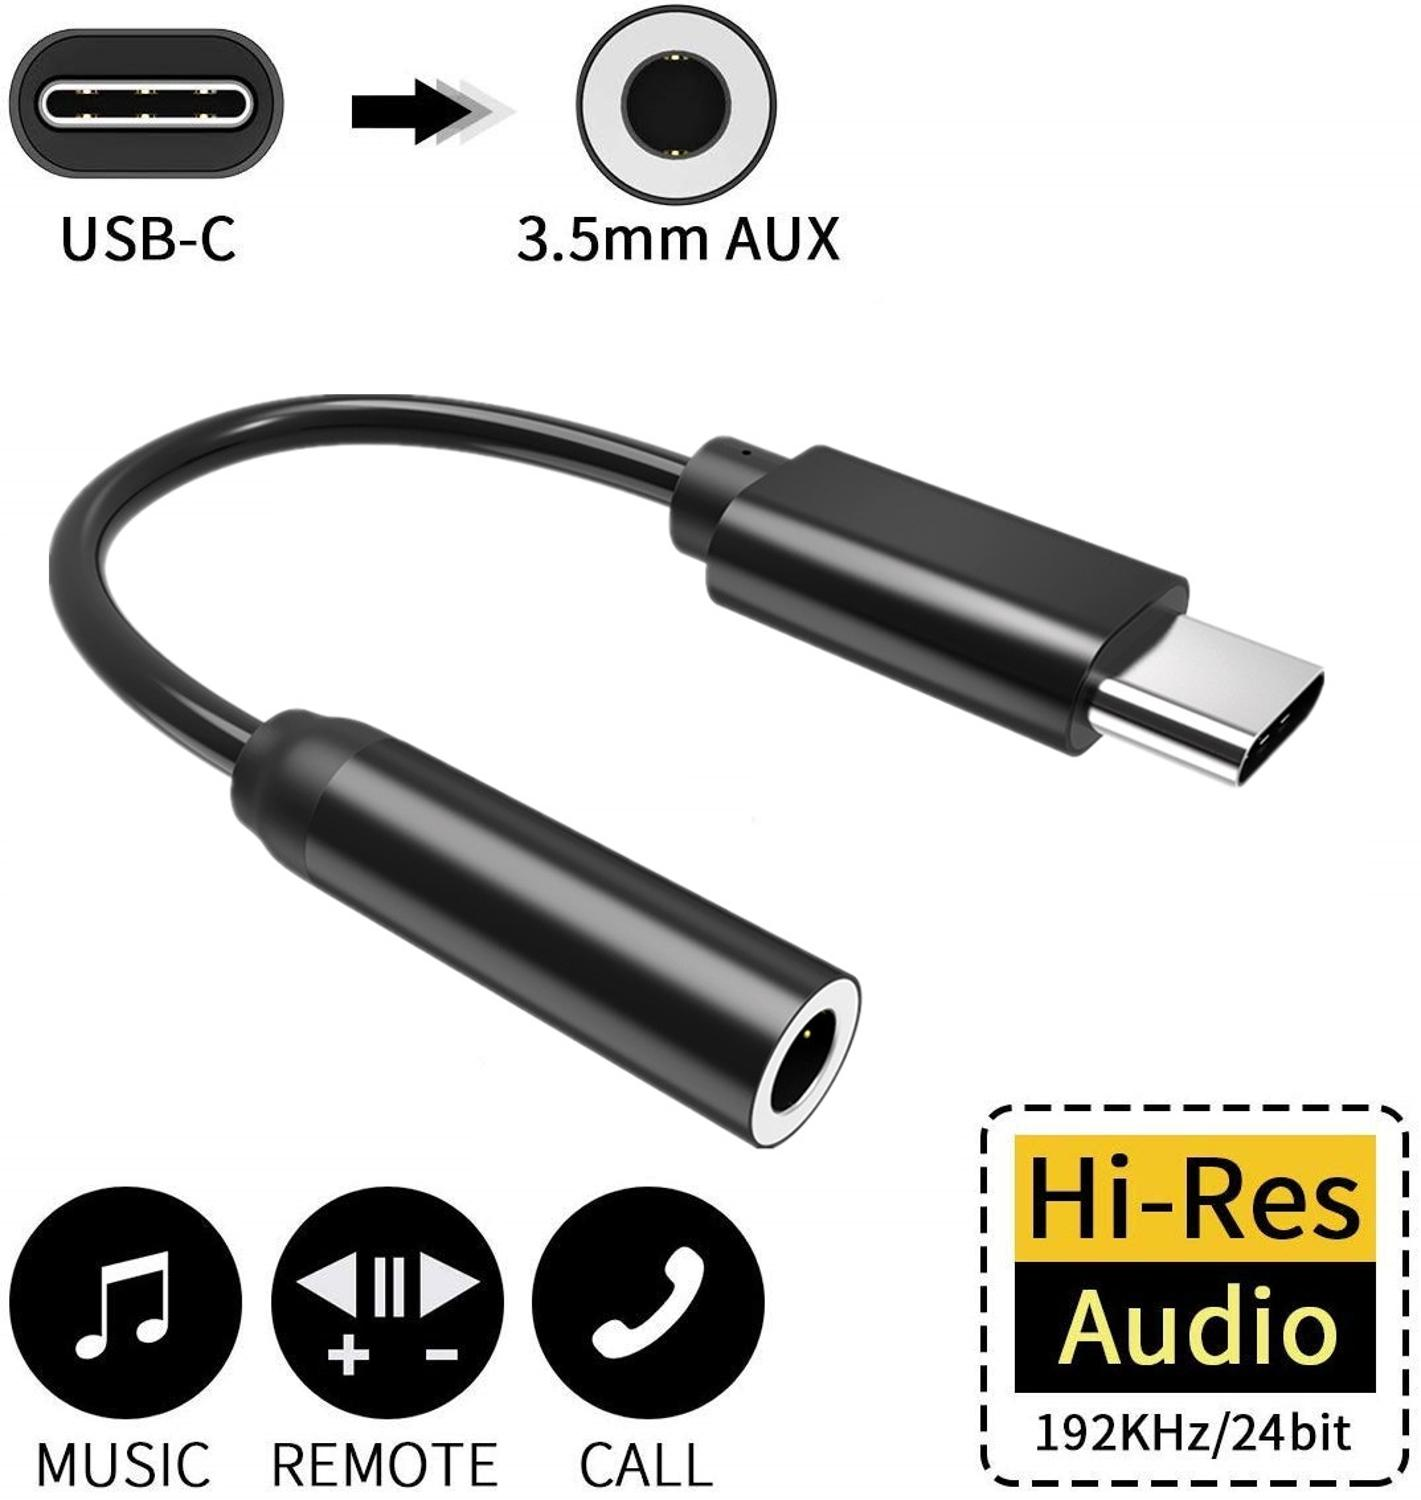 Type C Audio Adapter To 3.5 Mm Earphoes Cable USB C Headphone Jack For Samsung S20 Note 10 Huawei P30 P20 Mate 30 Google Pixel 3